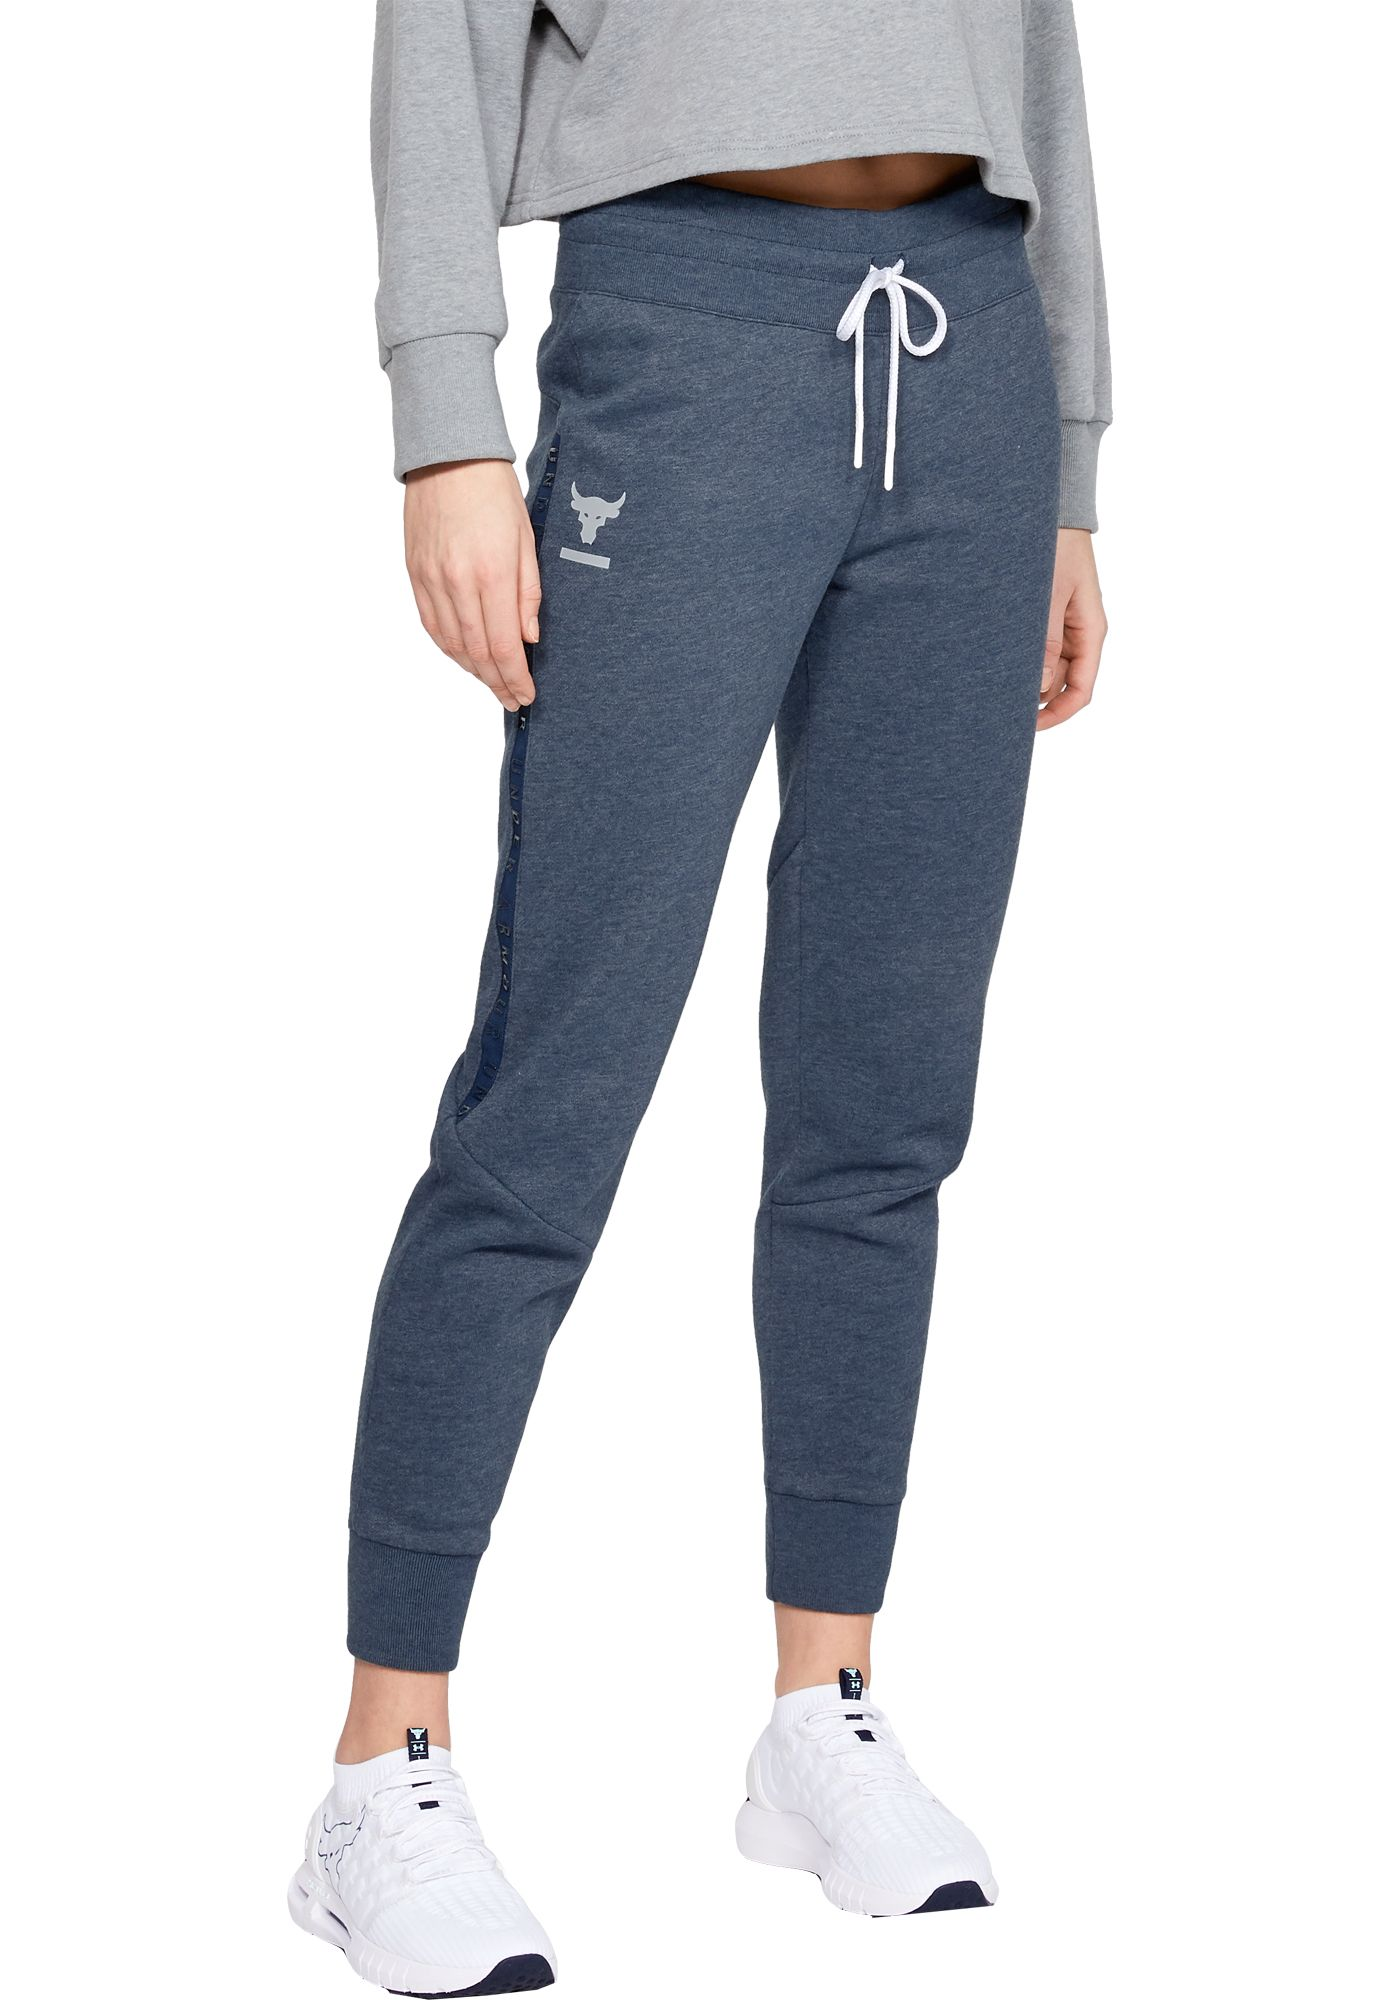 Under Armour Women's Project Rock Taped Fleece Pants